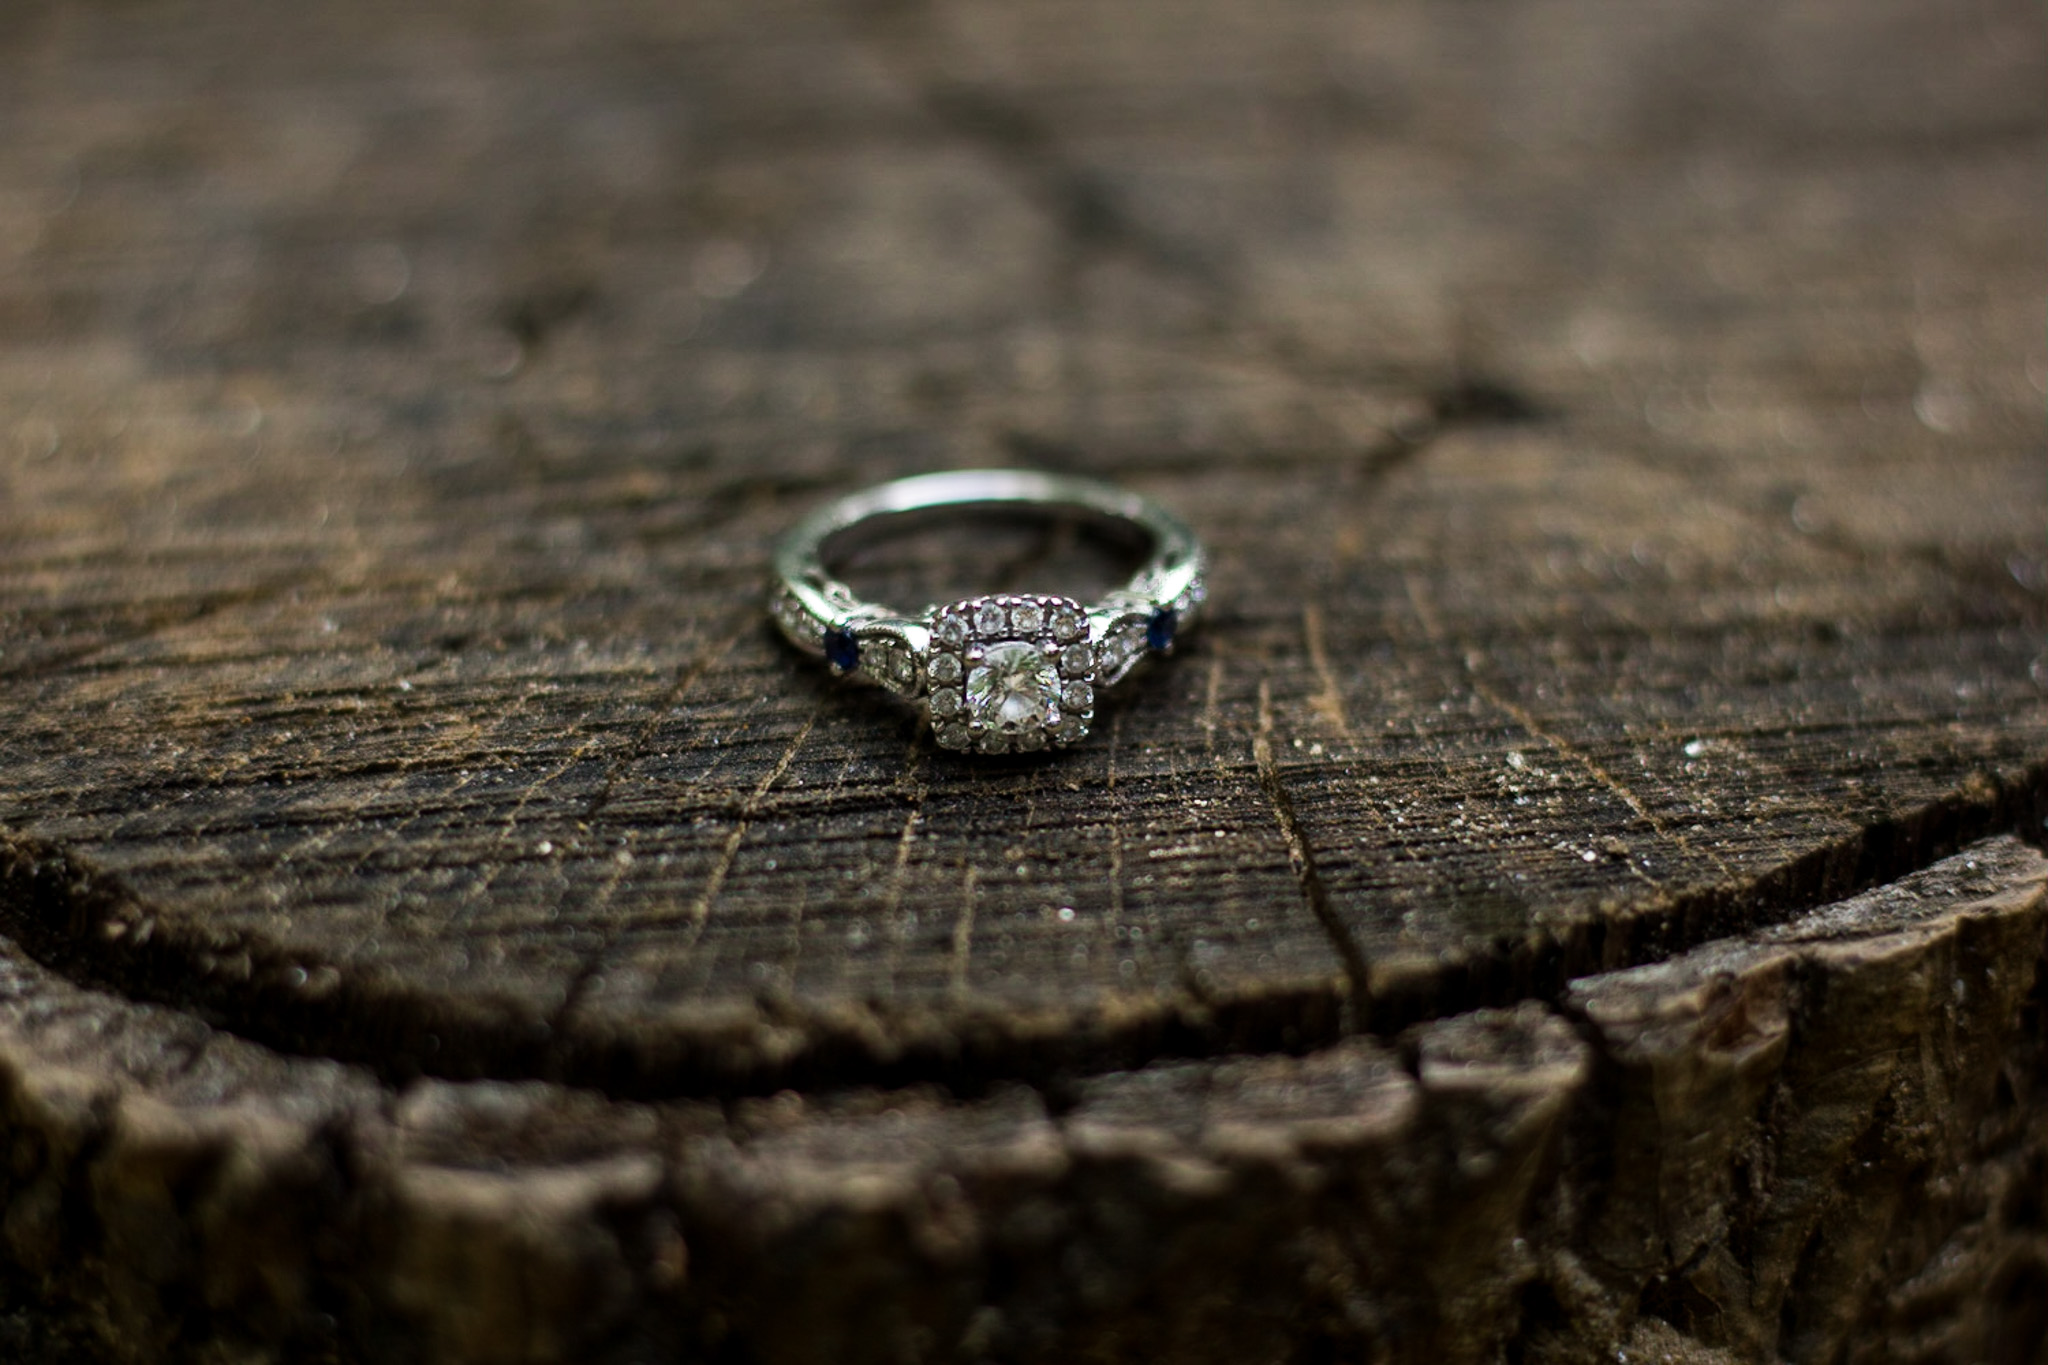 Engagement, Photography, Photographer, Columbia SC, Riverwalk, USC, College Campus, Couple, Engagement Ring, Ring, Wood, Stump, Rustic